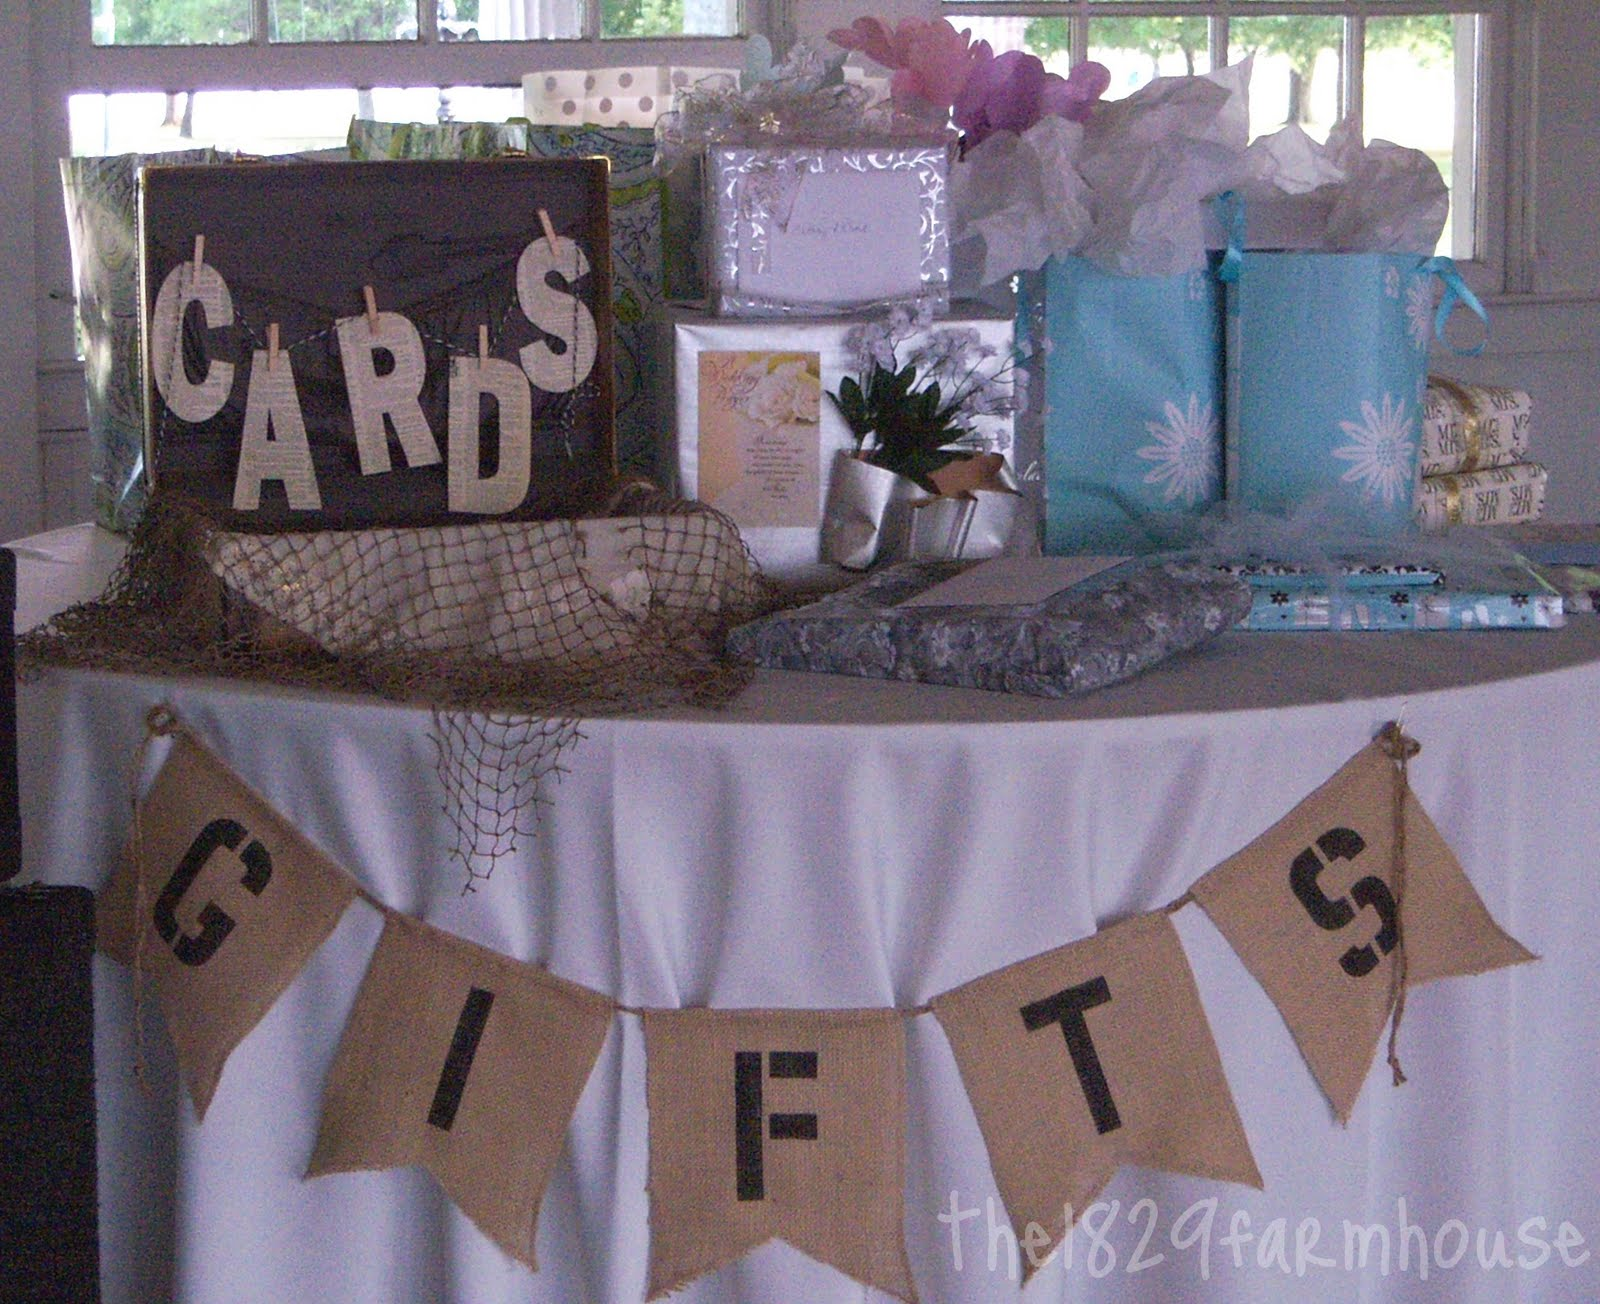 The 1829 Farmhouse: just married decor